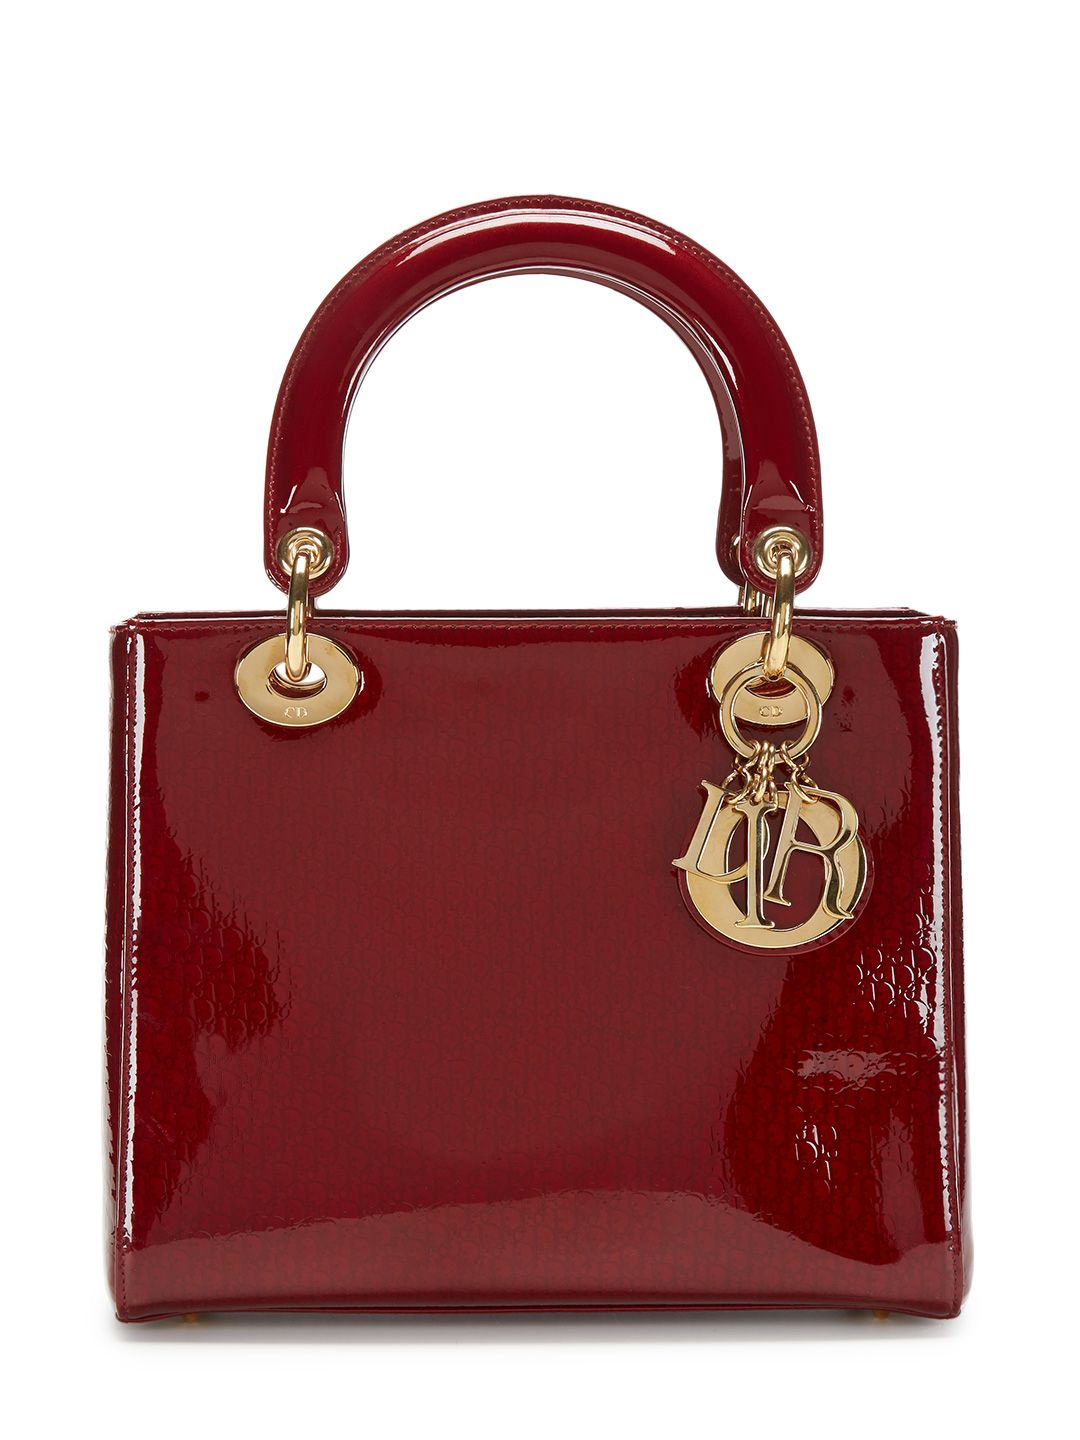 9bc0de51f1f5 Christian Dior Burgundy Patent Leather Medium Lady Dior Bag by Dior ...